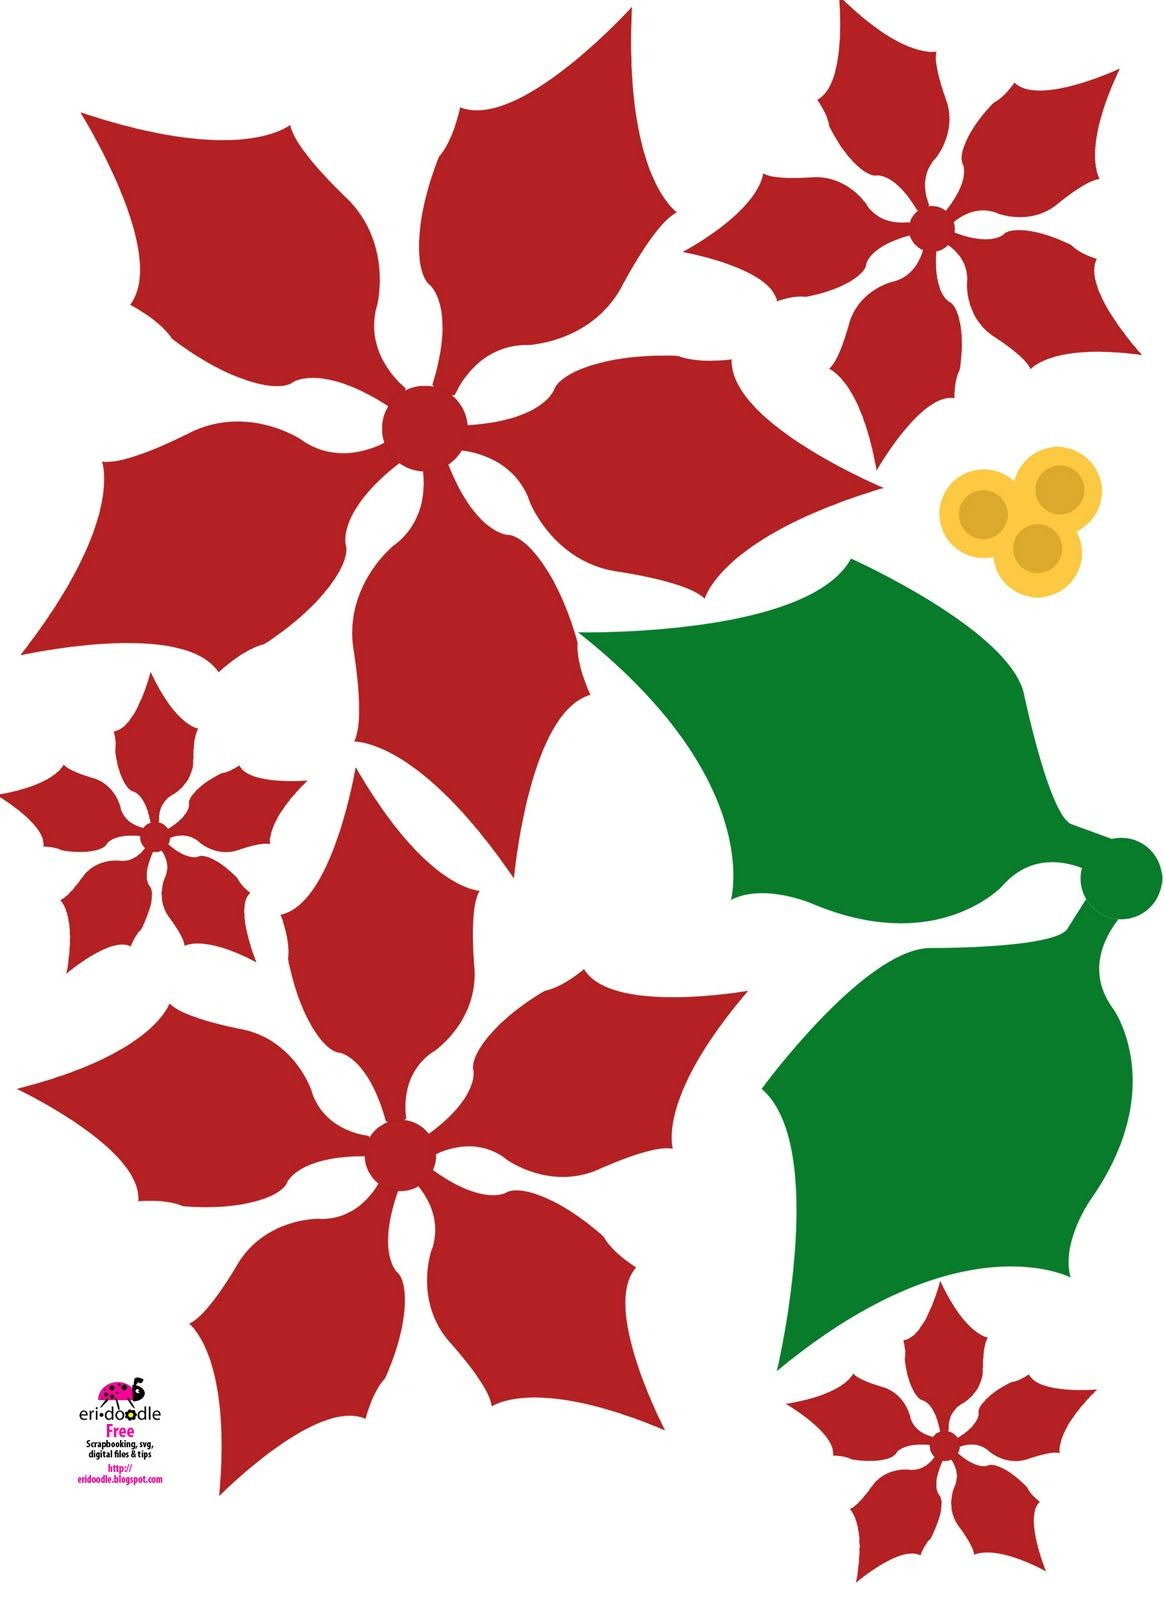 eri doodle designs and creations make a paper christmas flower paper poinsettia christmas flower template note in order to be able to print right click your mouse on the image save image as to